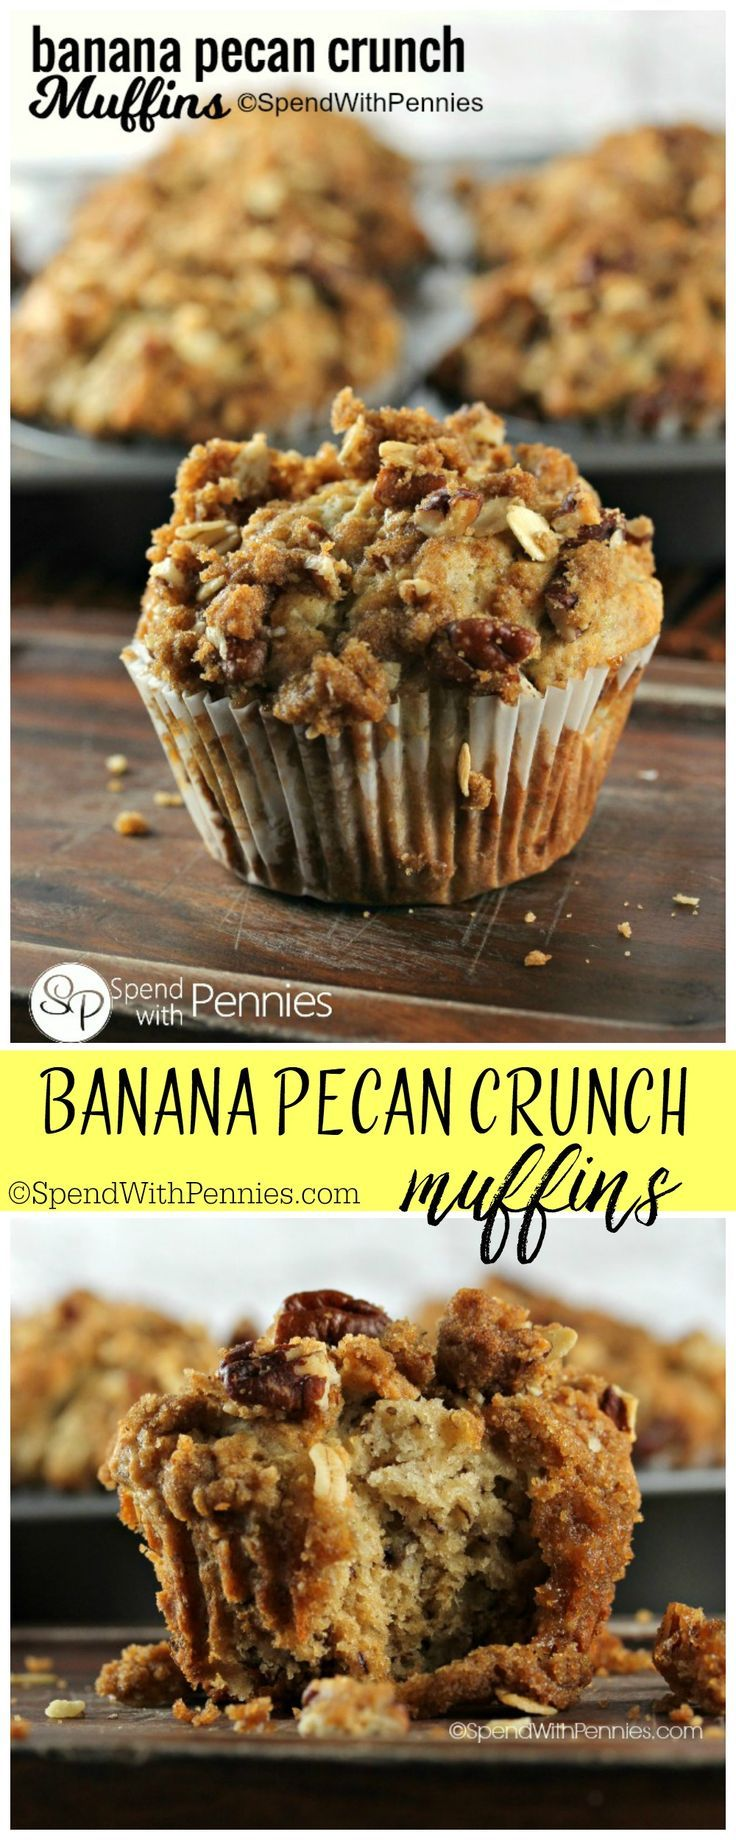 Our favorite muffins! These moist banana nut muffins are topped with a deliciously sweet & crunchy pecan streusel!